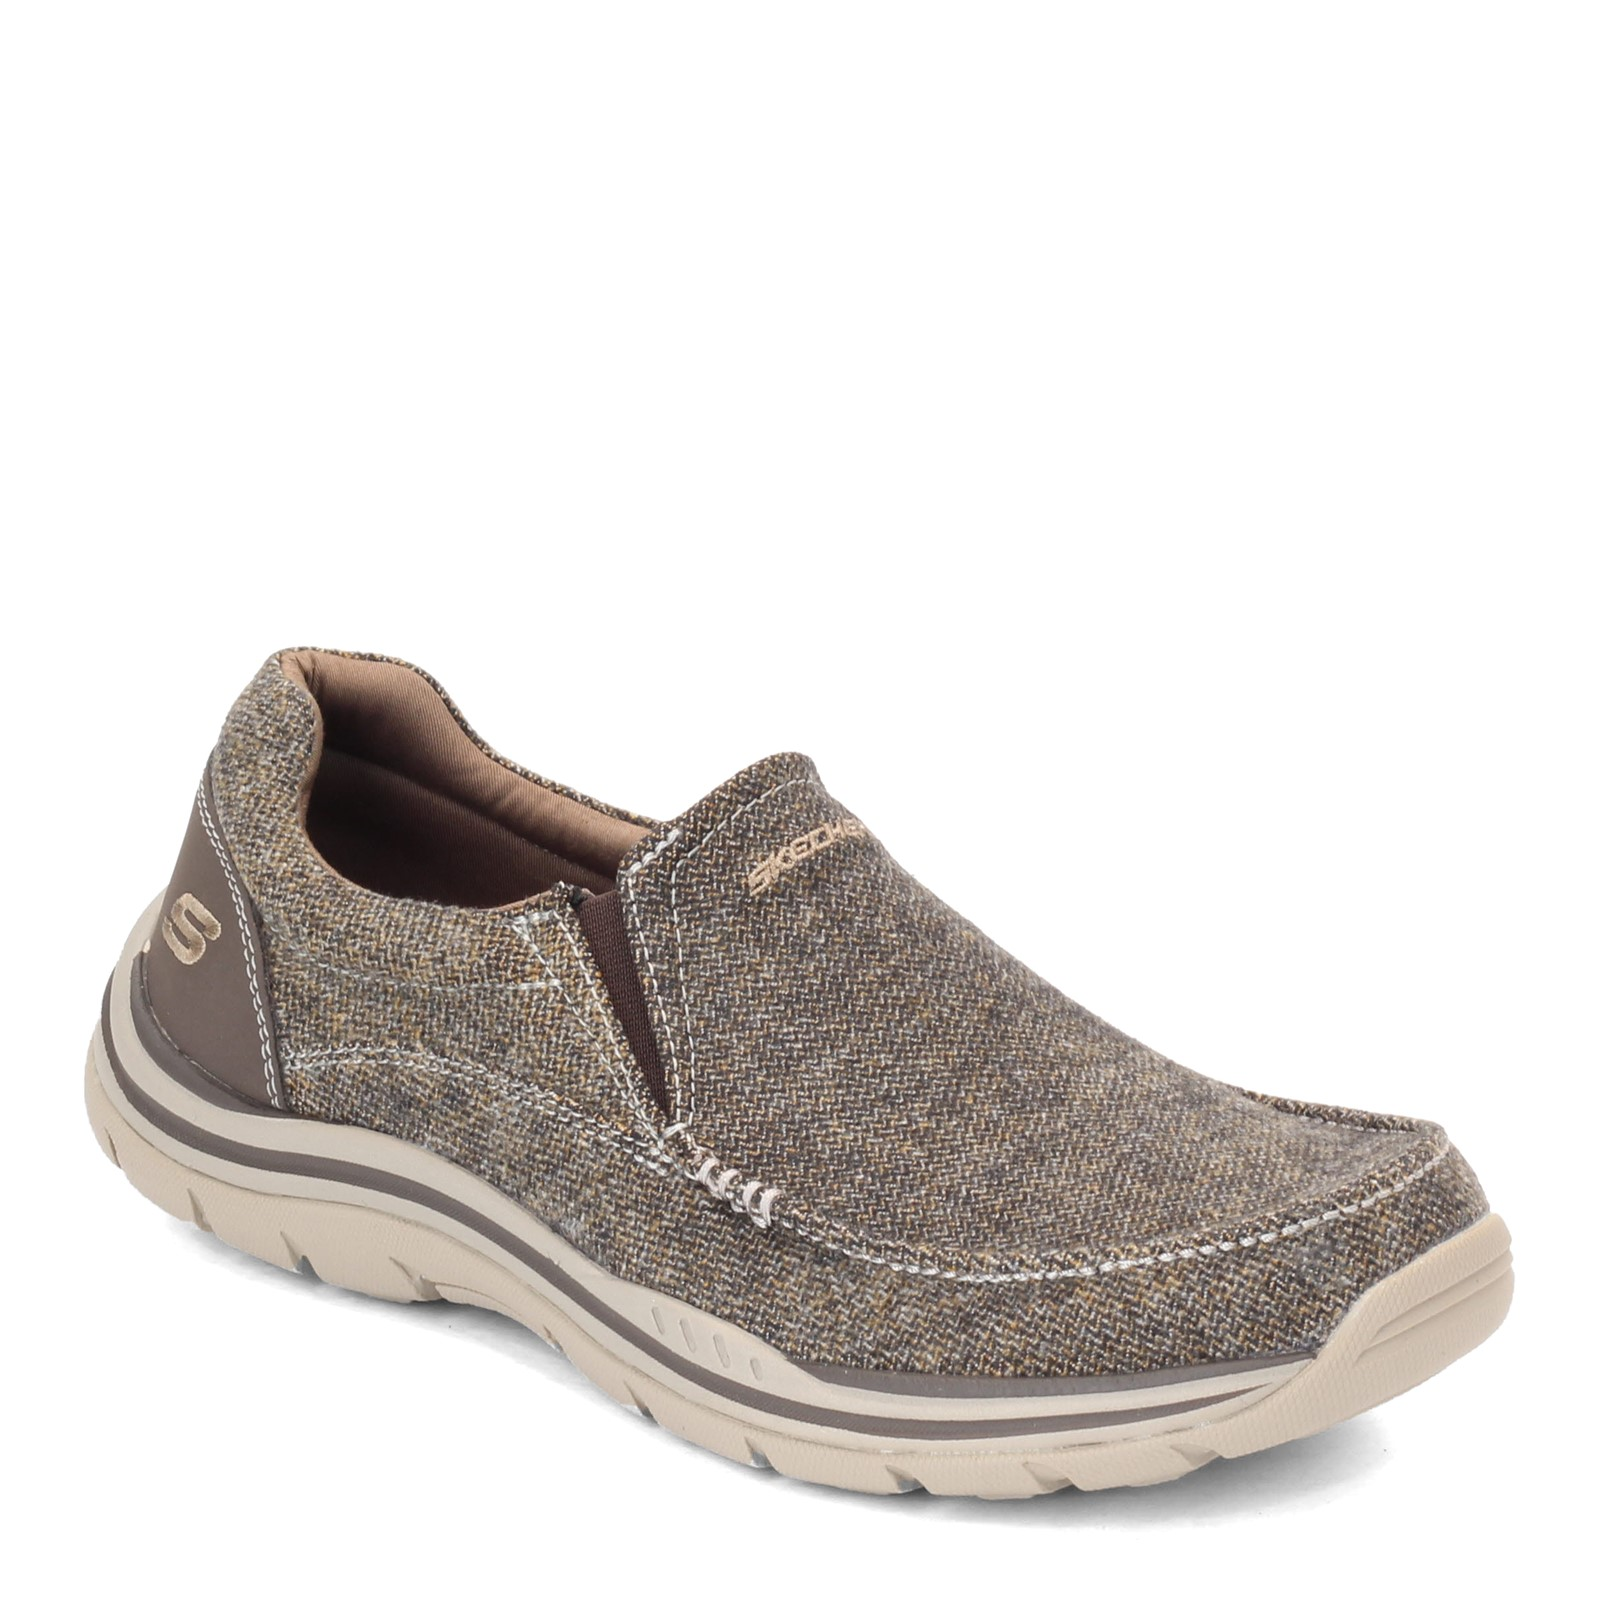 skechers mens shoes clearance